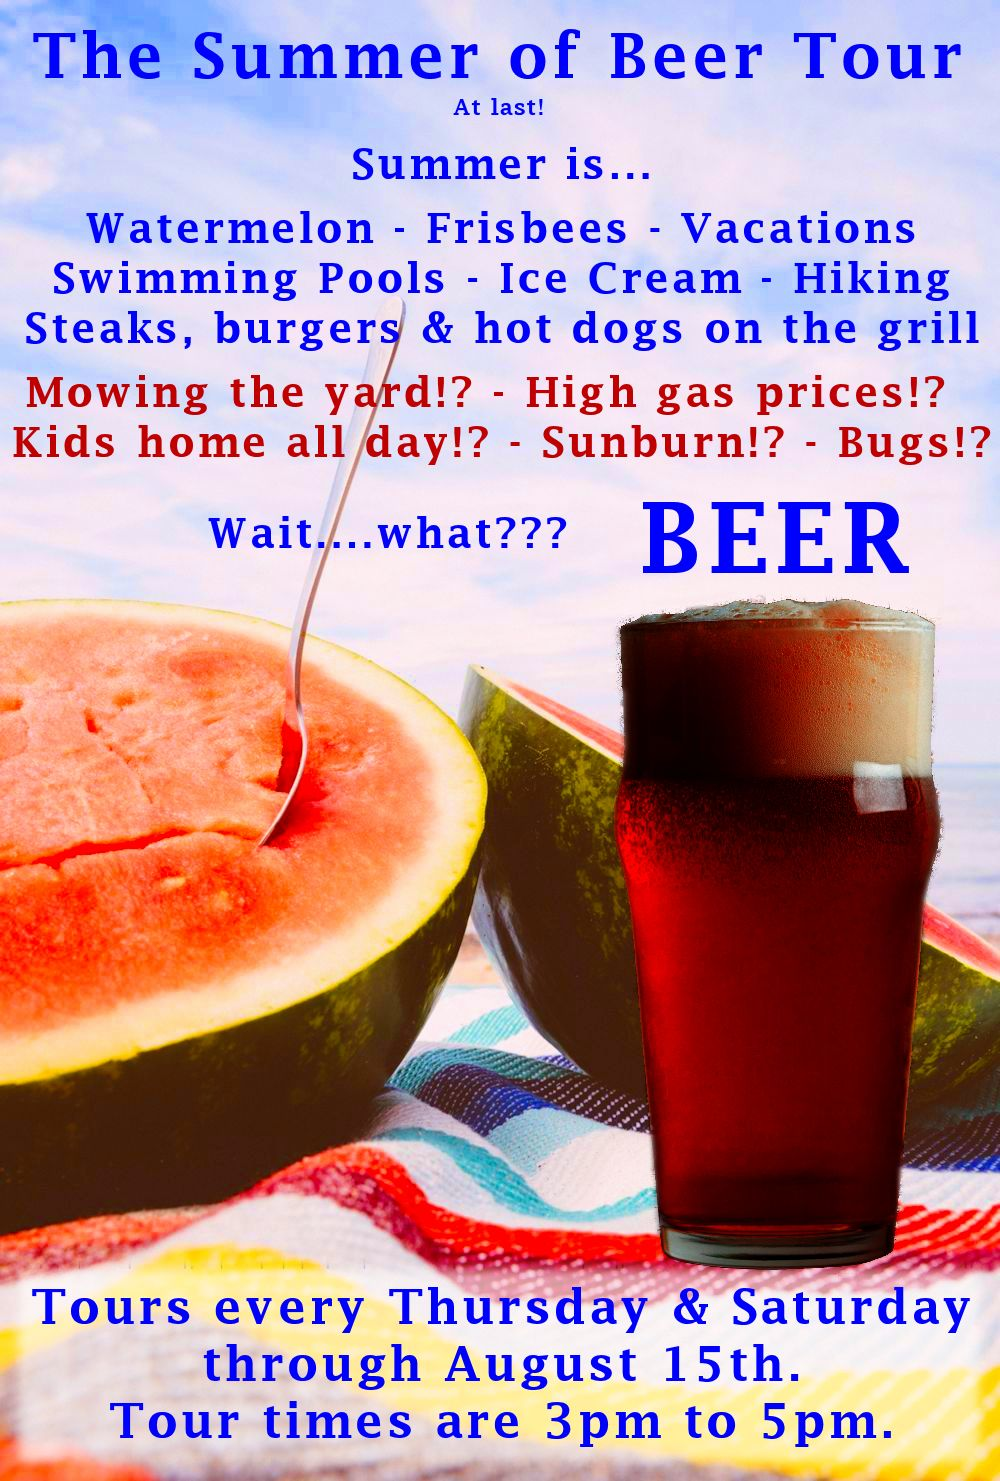 The Summer of Beer Tour